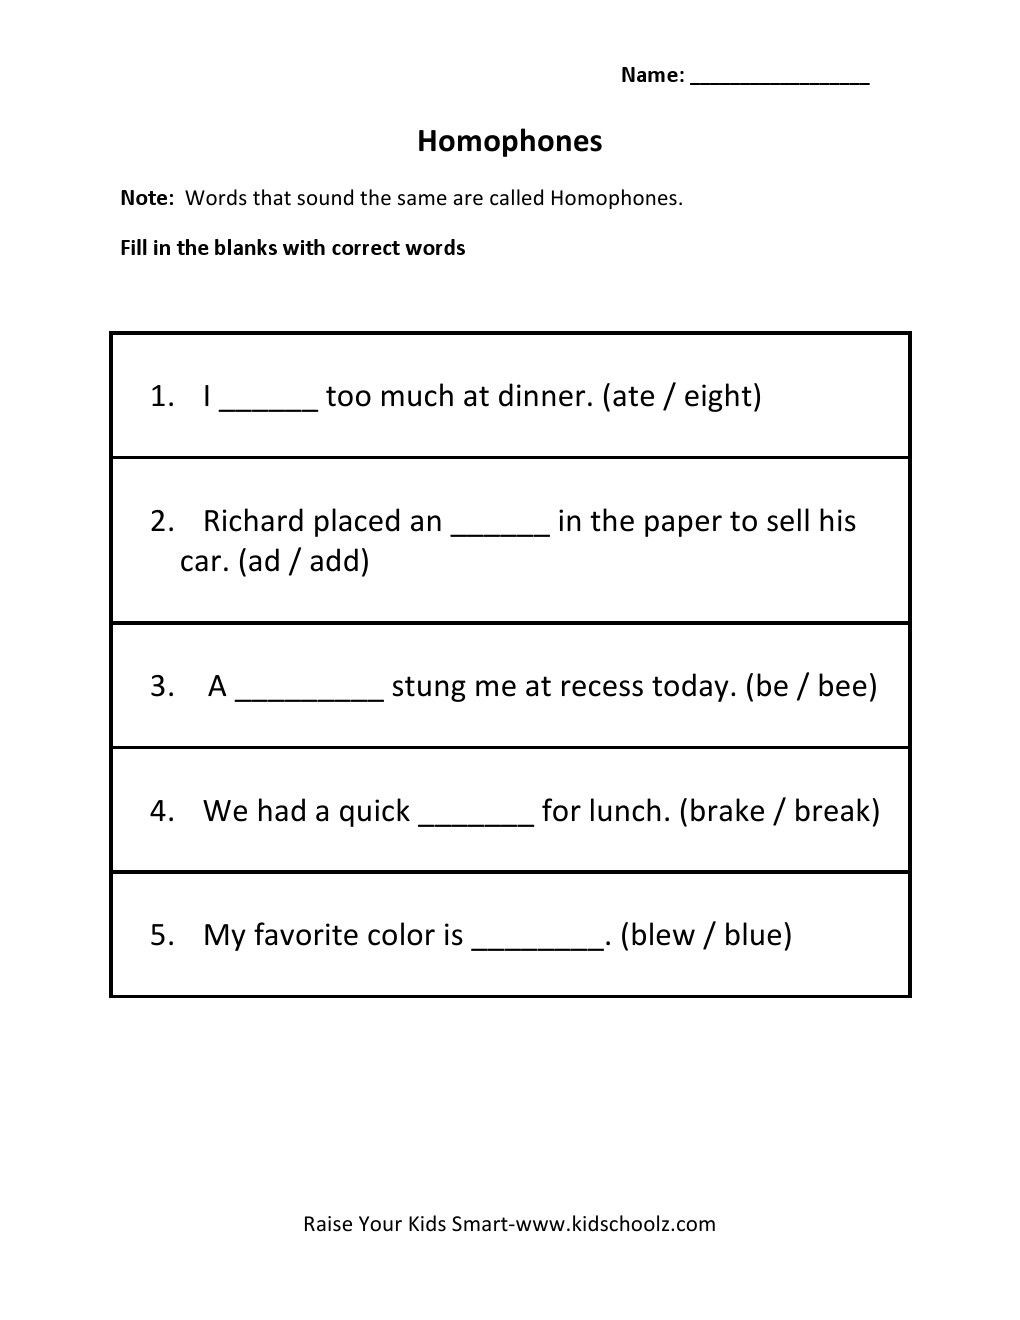 Homophones Worksheet 6th Grade Wp Content 2014 09 Homophones 1